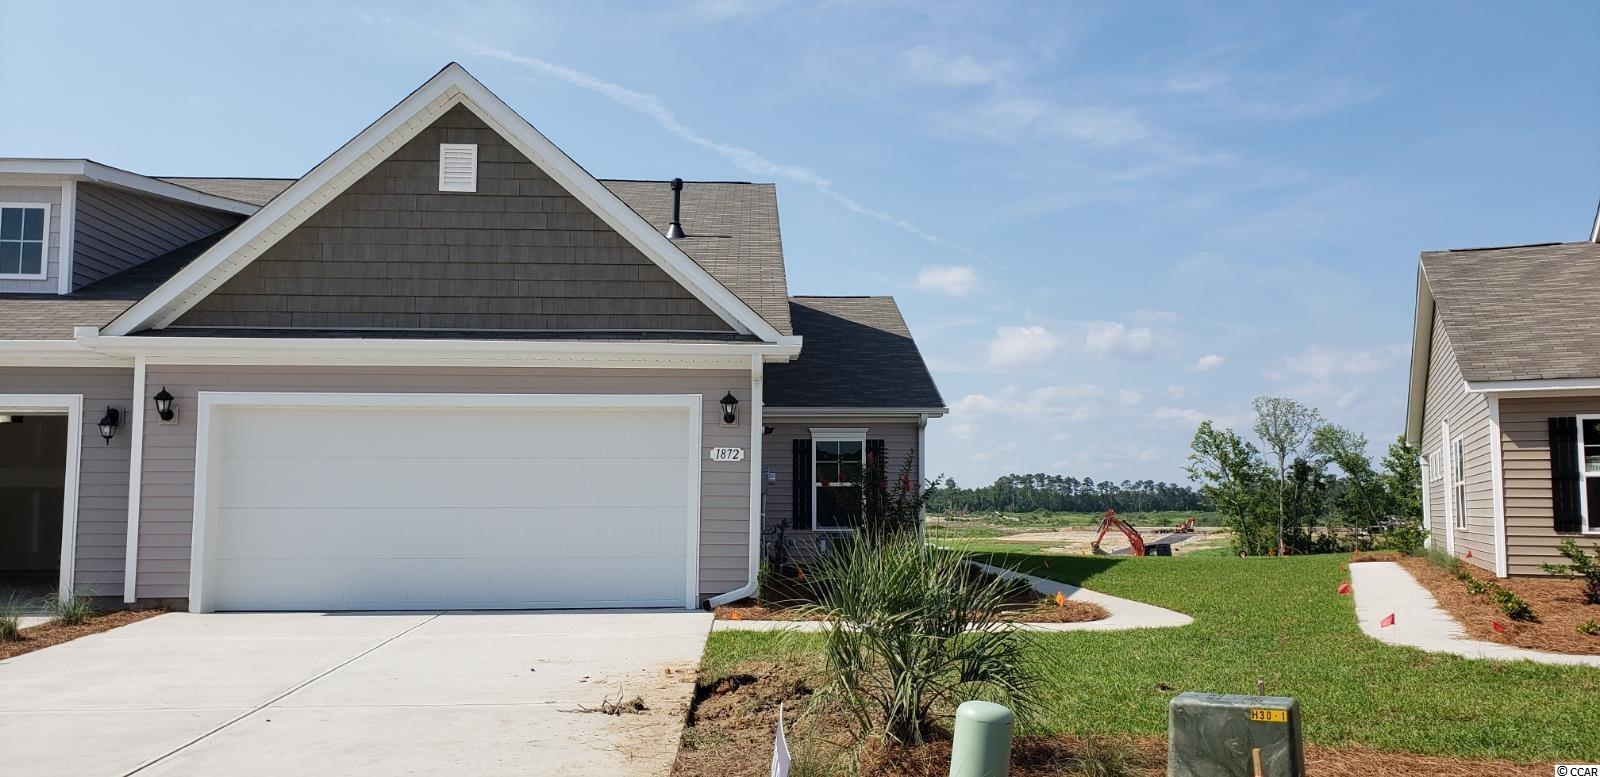 Lovely, low maintenance, paired ranch home in a brand new community! This Tuscan floorplan offers a spacious, open layout all on a single level. With vaulted ceilings, tons of natural light throughout the living and dining areas, large kitchen island with breakfast bar, and spacious rear screen porch, this home is perfect for entertaining! The kitchen also features granite countertops, stainless steel appliances, modern gray painted cabinetry, and large pantry with ample storage. Roomy primary bedroom suite with walk-in closet and private bath with dual vanity and 5 ft. walk-in shower. This home also features laminate wood flooring throughout the main living areas, a tankless gas water heater, and our industry leading smart home technology package. Yard and exterior maintenance are all covered! 4' black aluminum fencing is permitted (per HOA approval).  *Photos are of a similar Tuscan home. (Home and community information, including pricing, included features, terms, availability and amenities, are subject to change prior to sale at any time without notice or obligation. Square footages are approximate. Pictures, photographs, colors, features, and sizes are for illustration purposes only and will vary from the homes as built. Equal housing opportunity builder.)